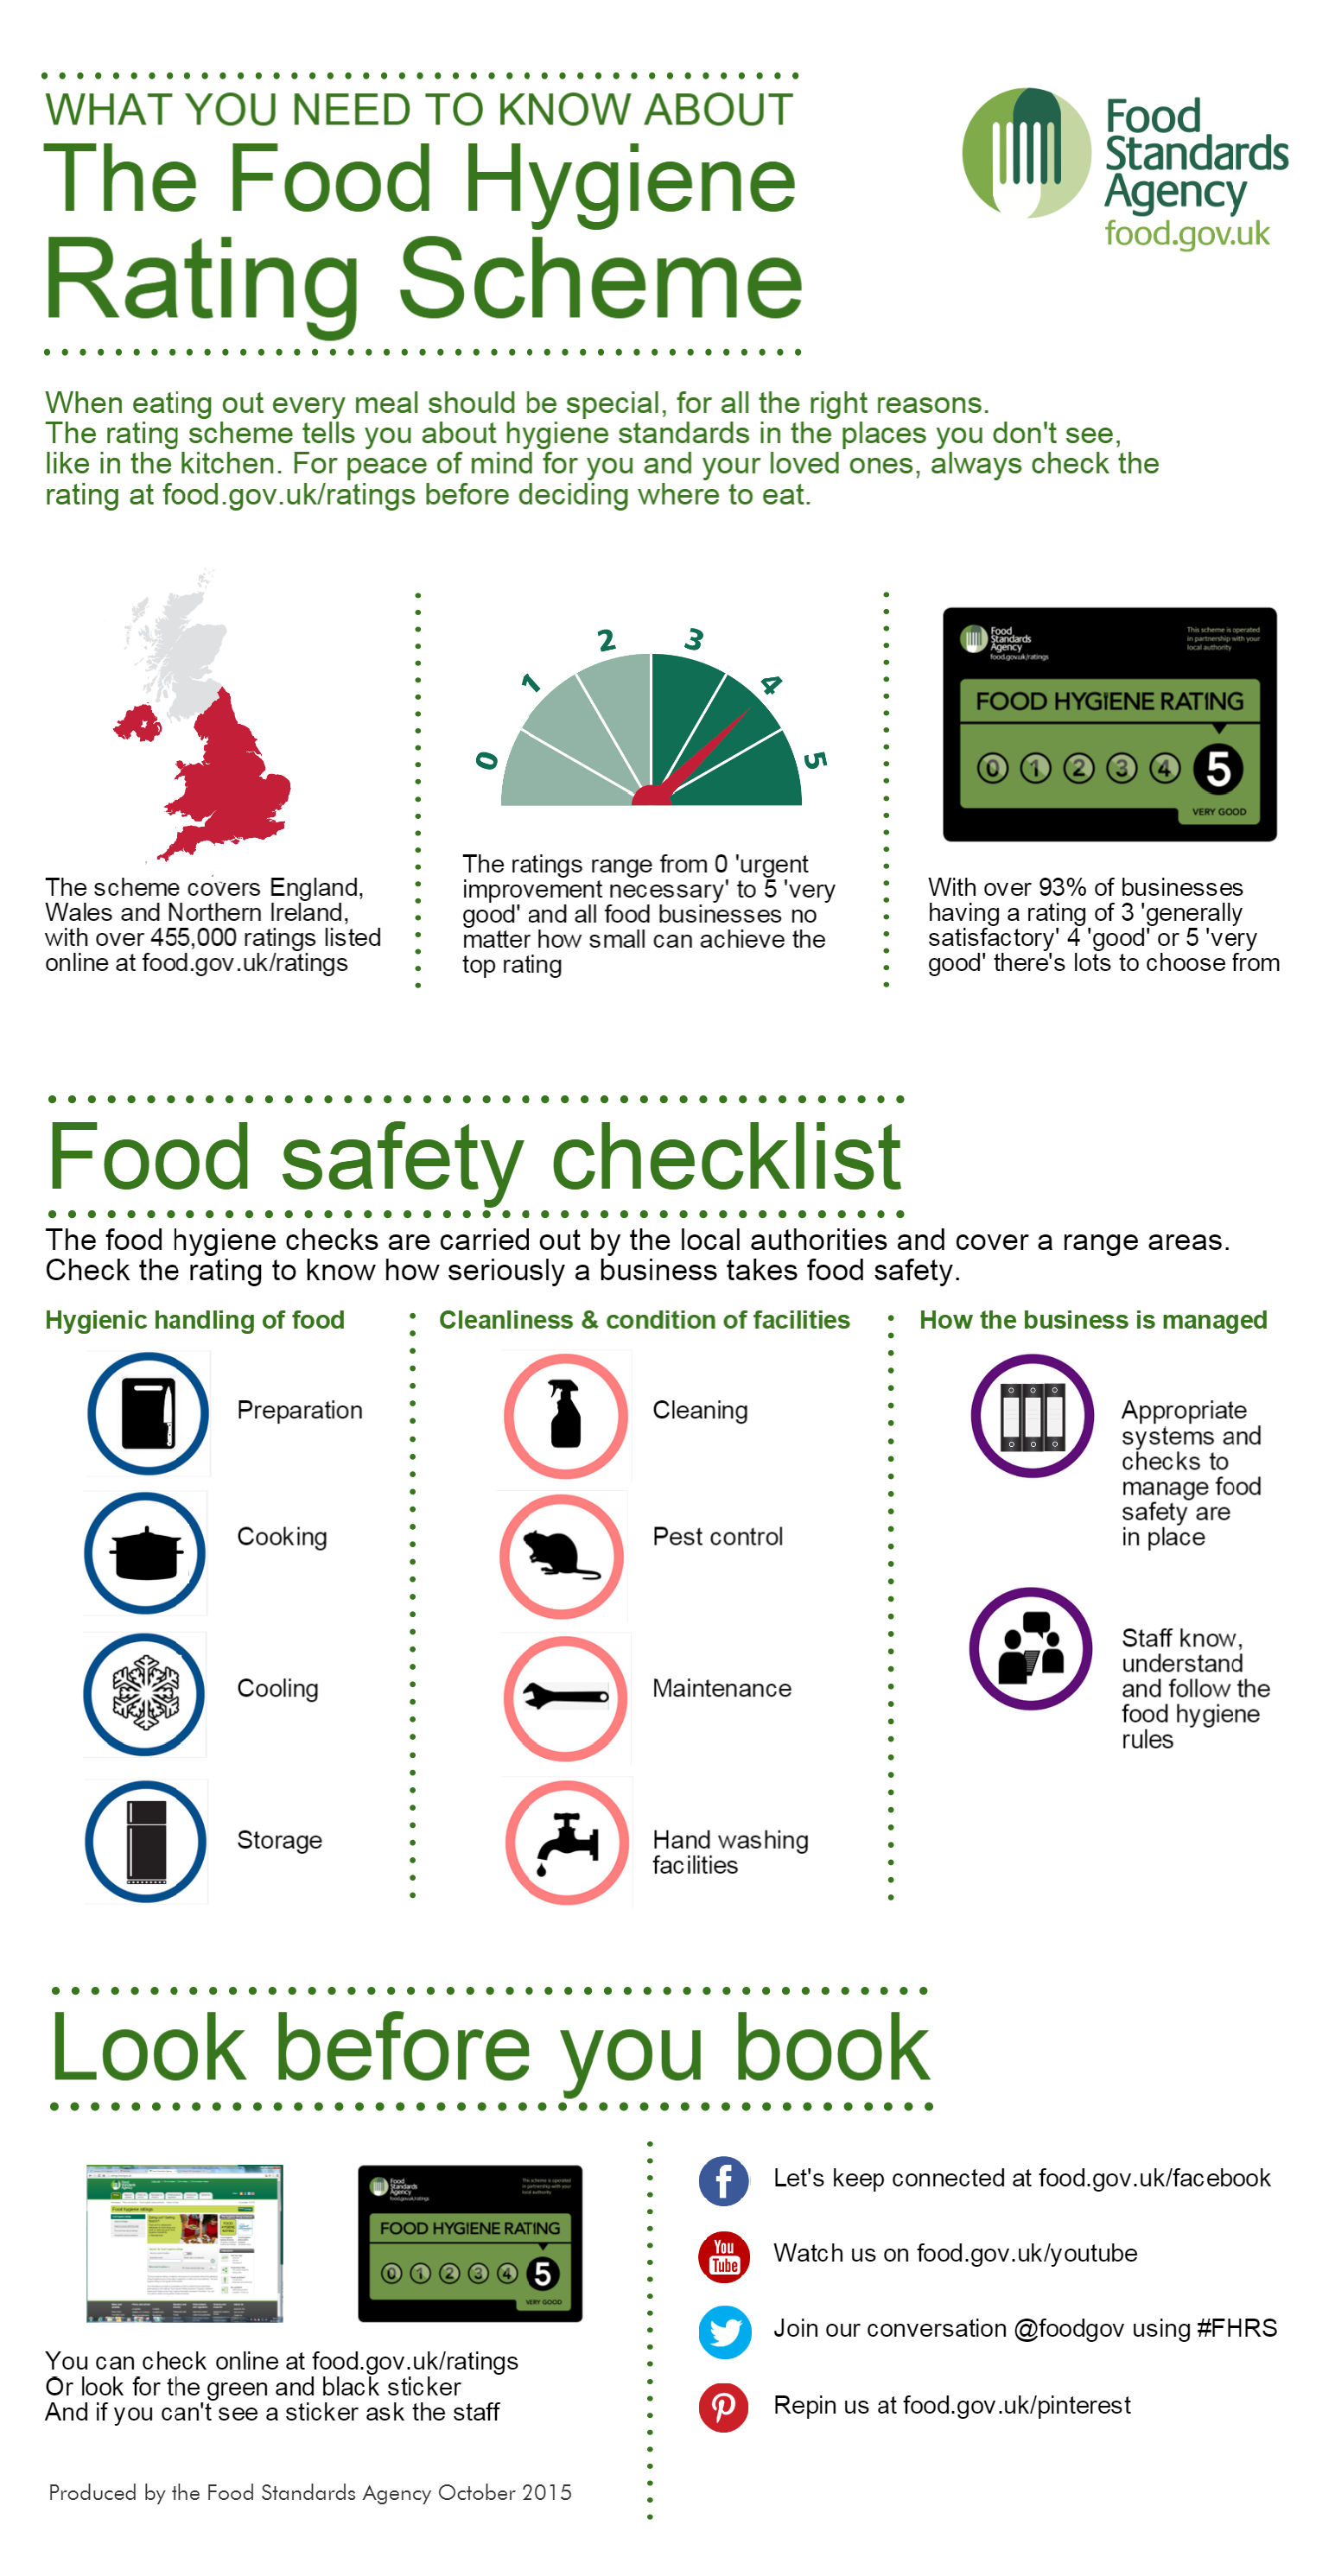 Infographic showing what you need to know about the Food